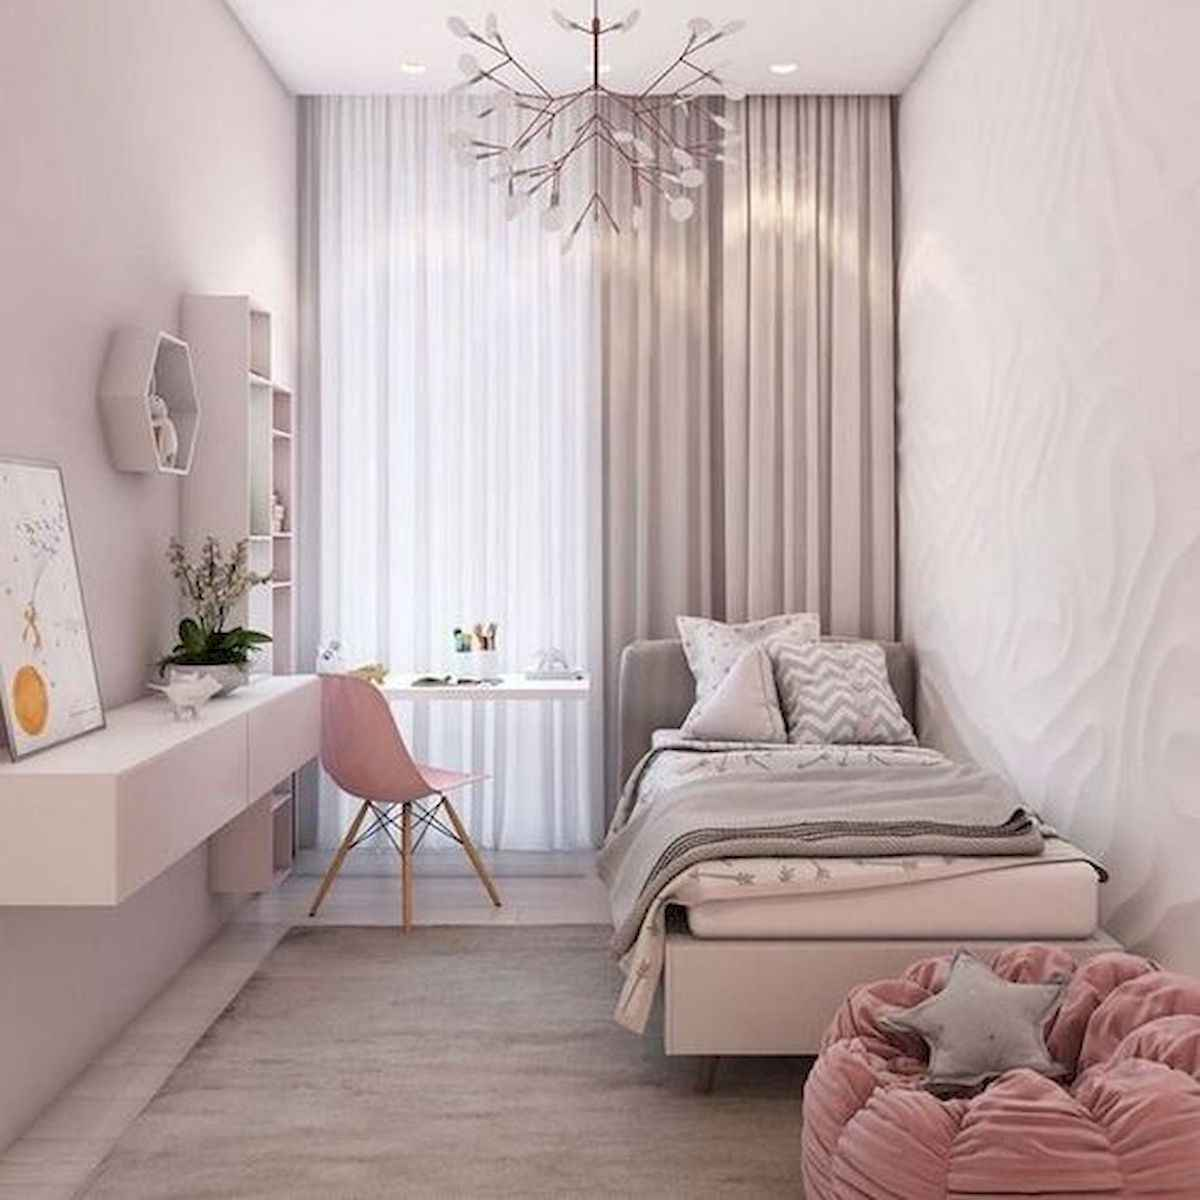 50 Stunning Small Apartment Bedroom Design Ideas and Decor (10)